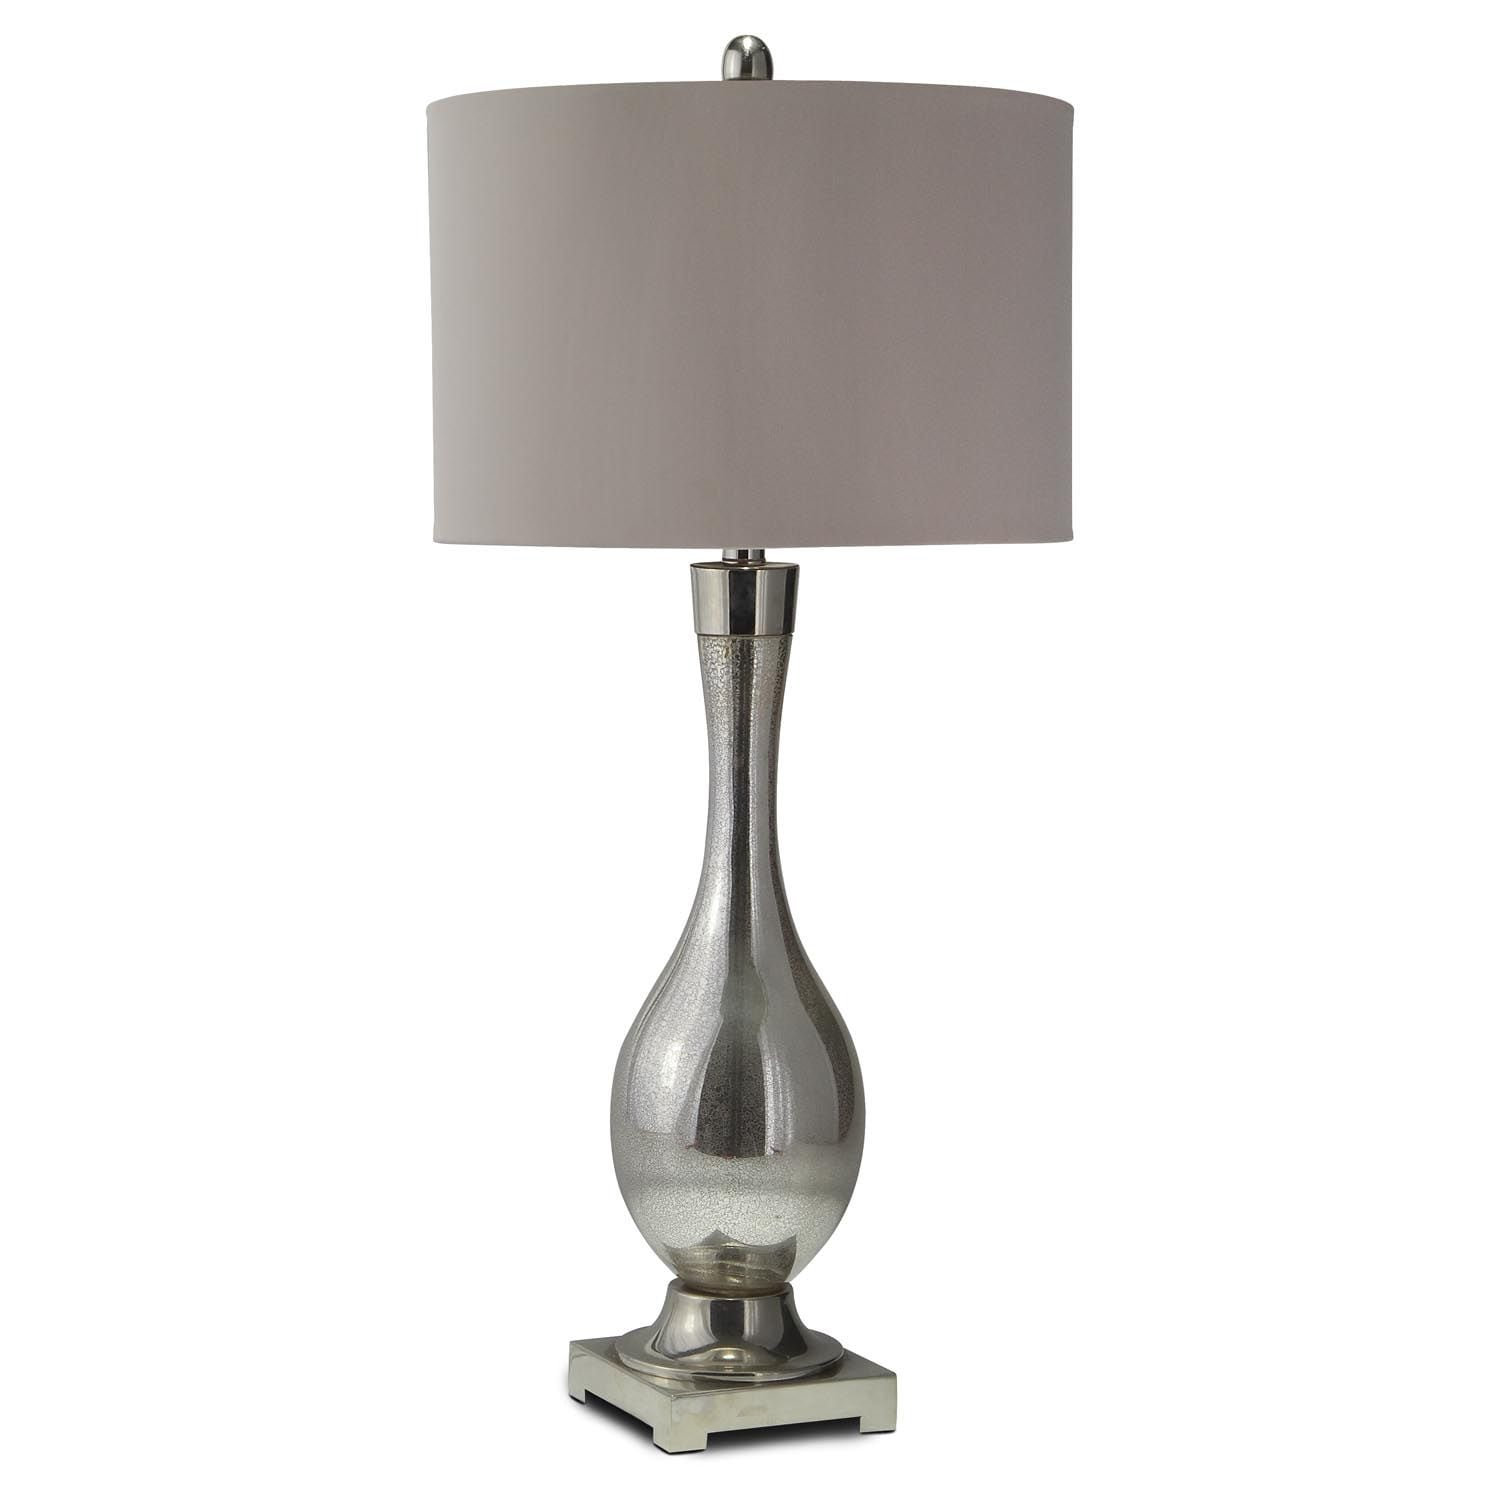 Mercury Glass Table Lamp Value City Furniture